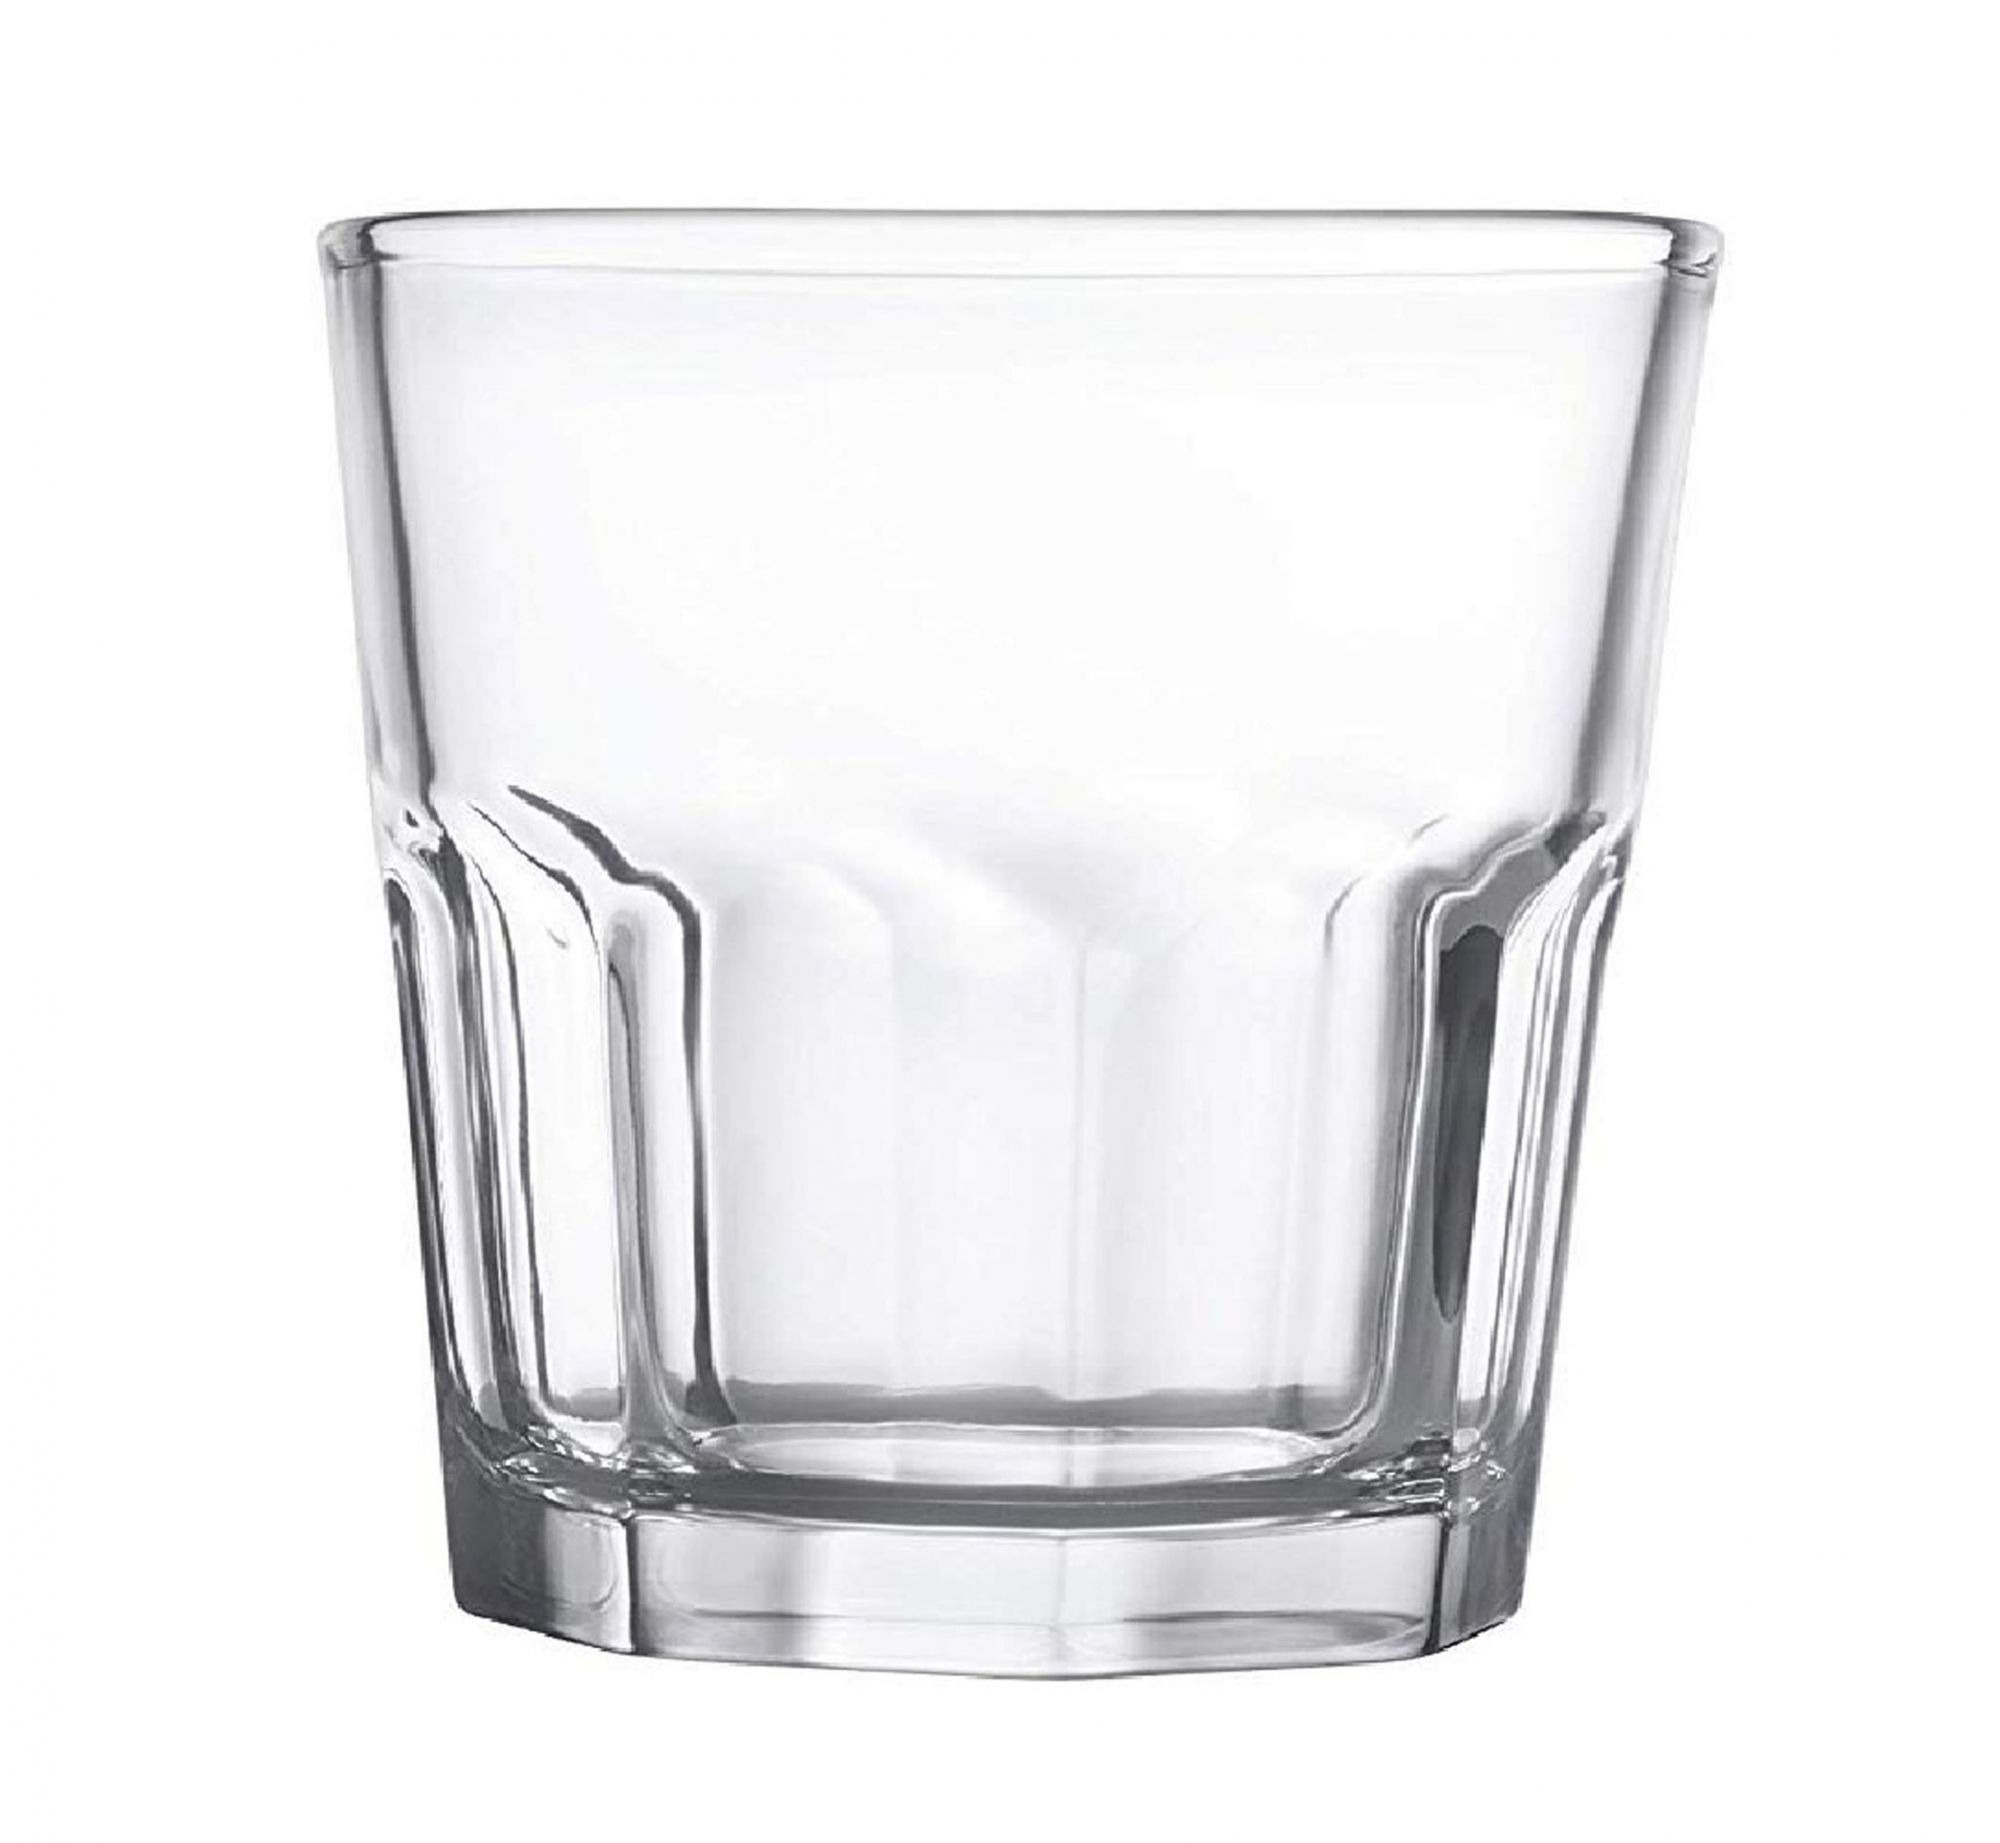 Clear Glass Juice Tumbler - 240 ML, Set of 4